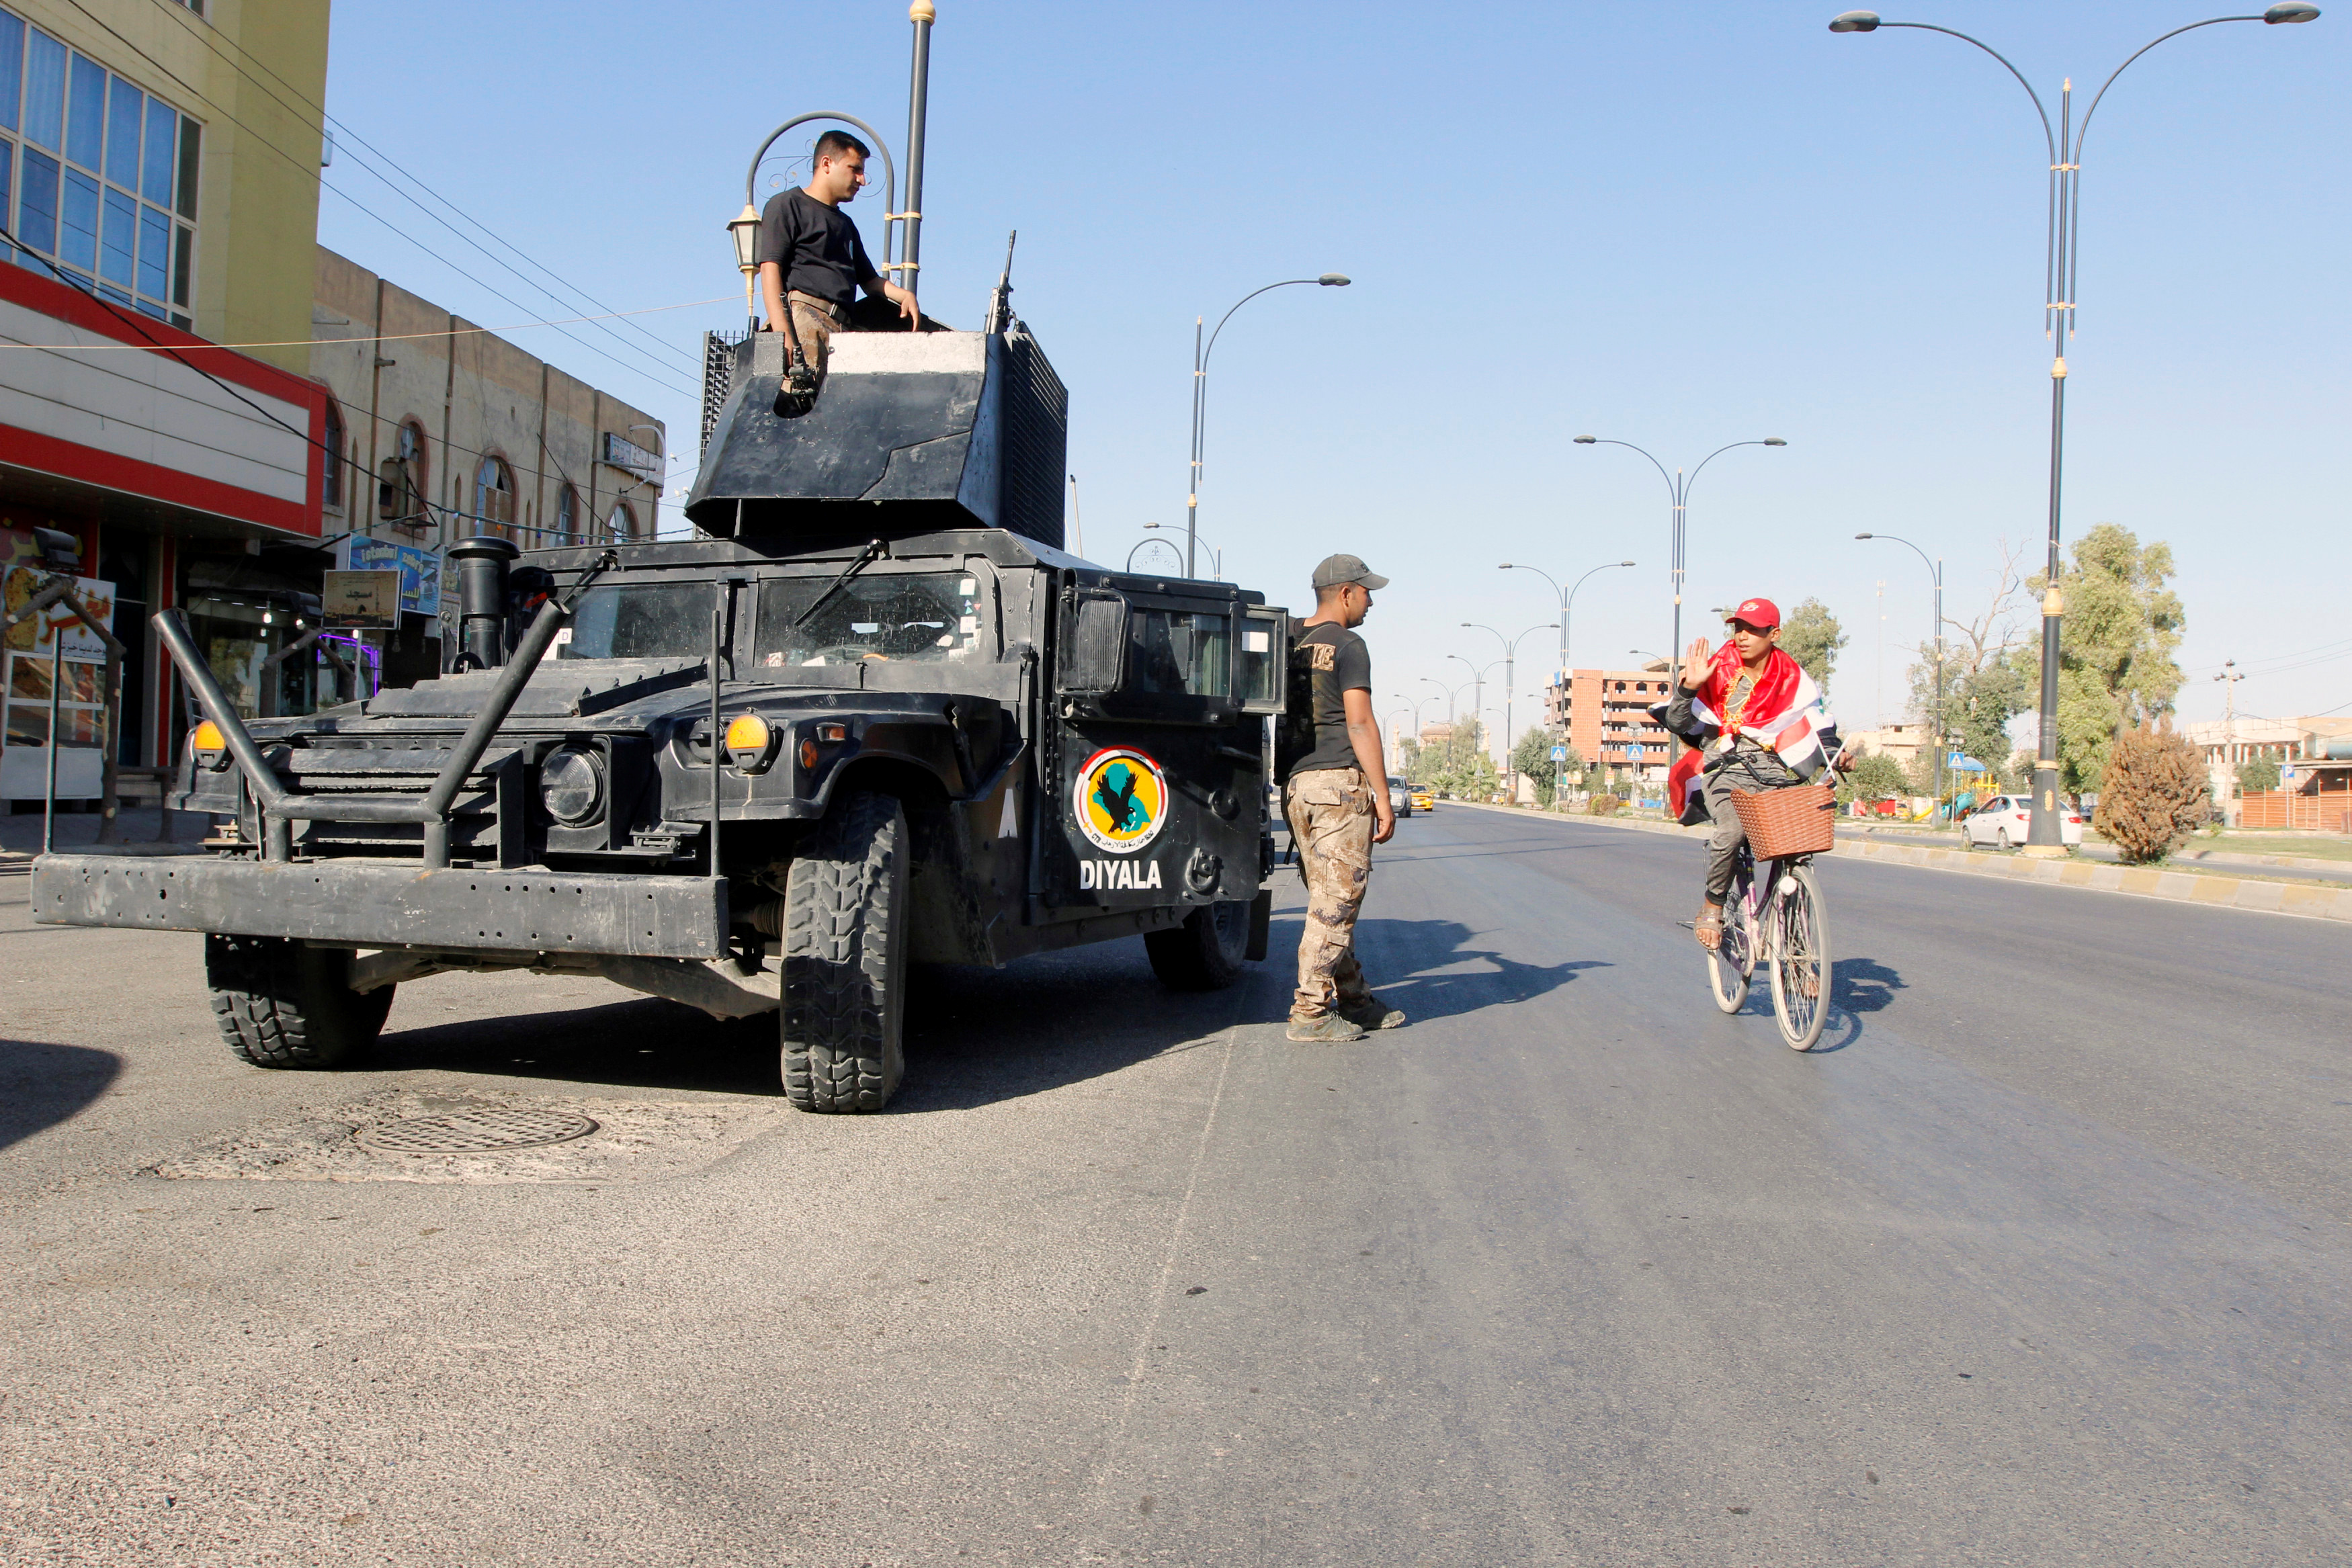 A cyclist gestures at Iraqi security forces, on a street of Kirkuk, Iraq, Oct. 19, 2017.